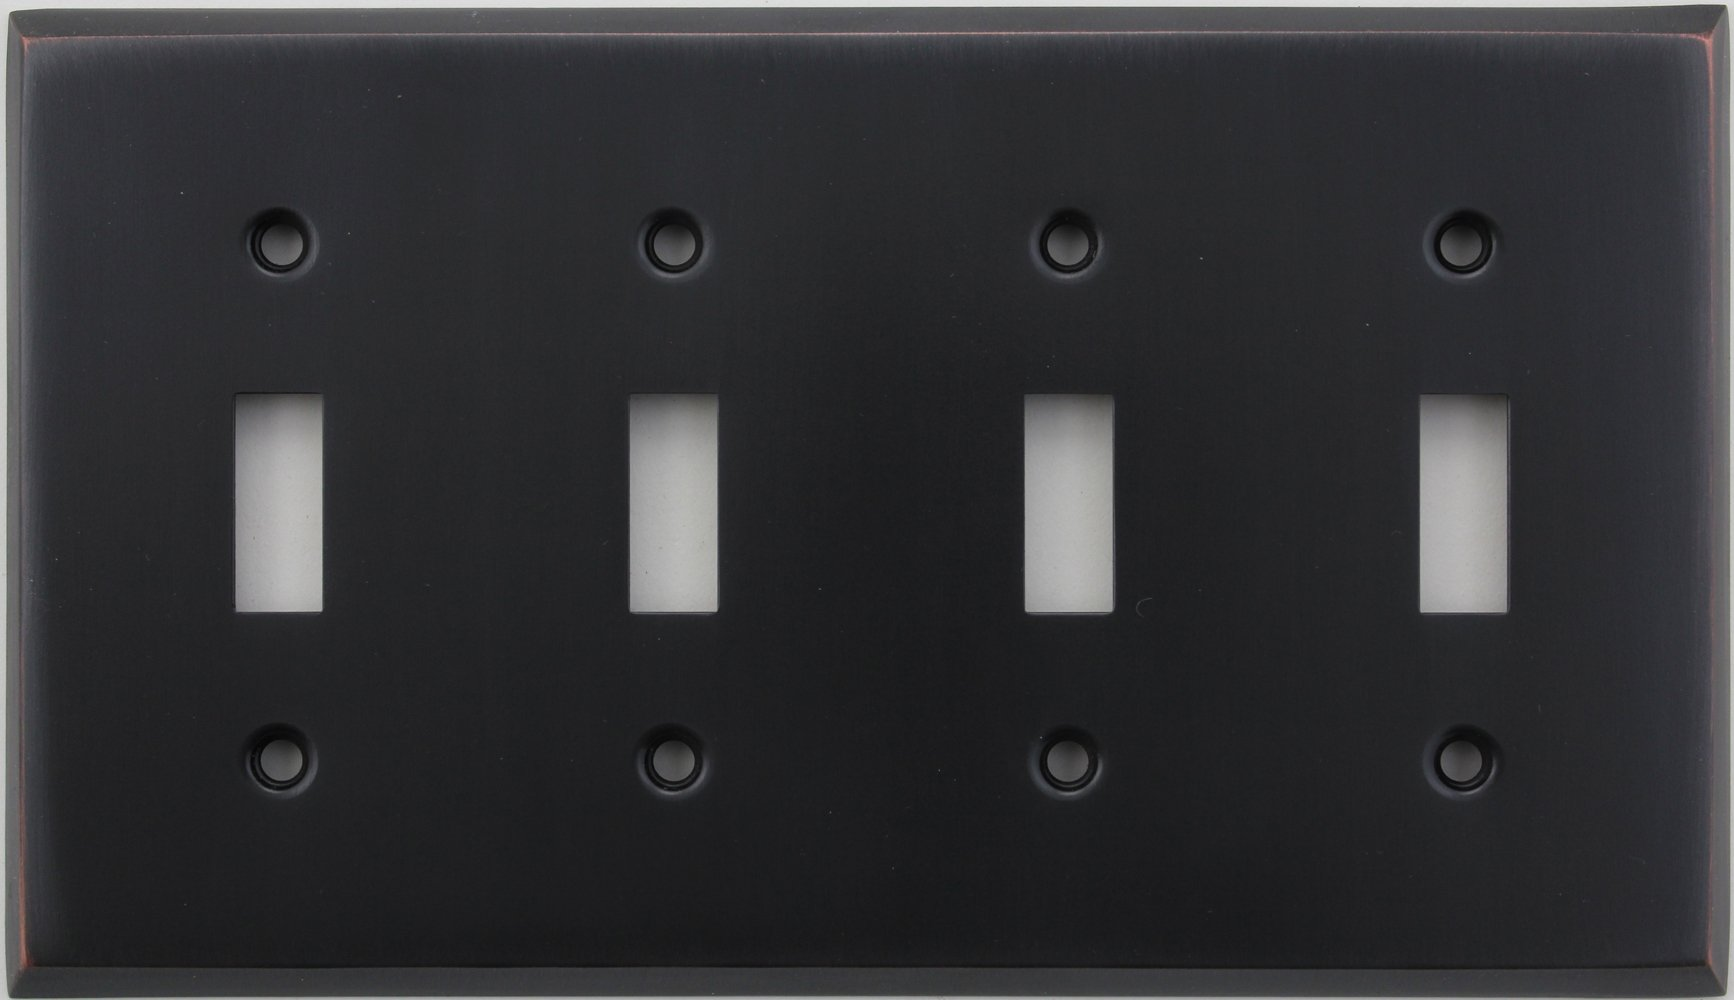 Classic Accents Stamped Steel Oil Rubbed Bronze Four Gang Toggle Light Switch Wall Plate